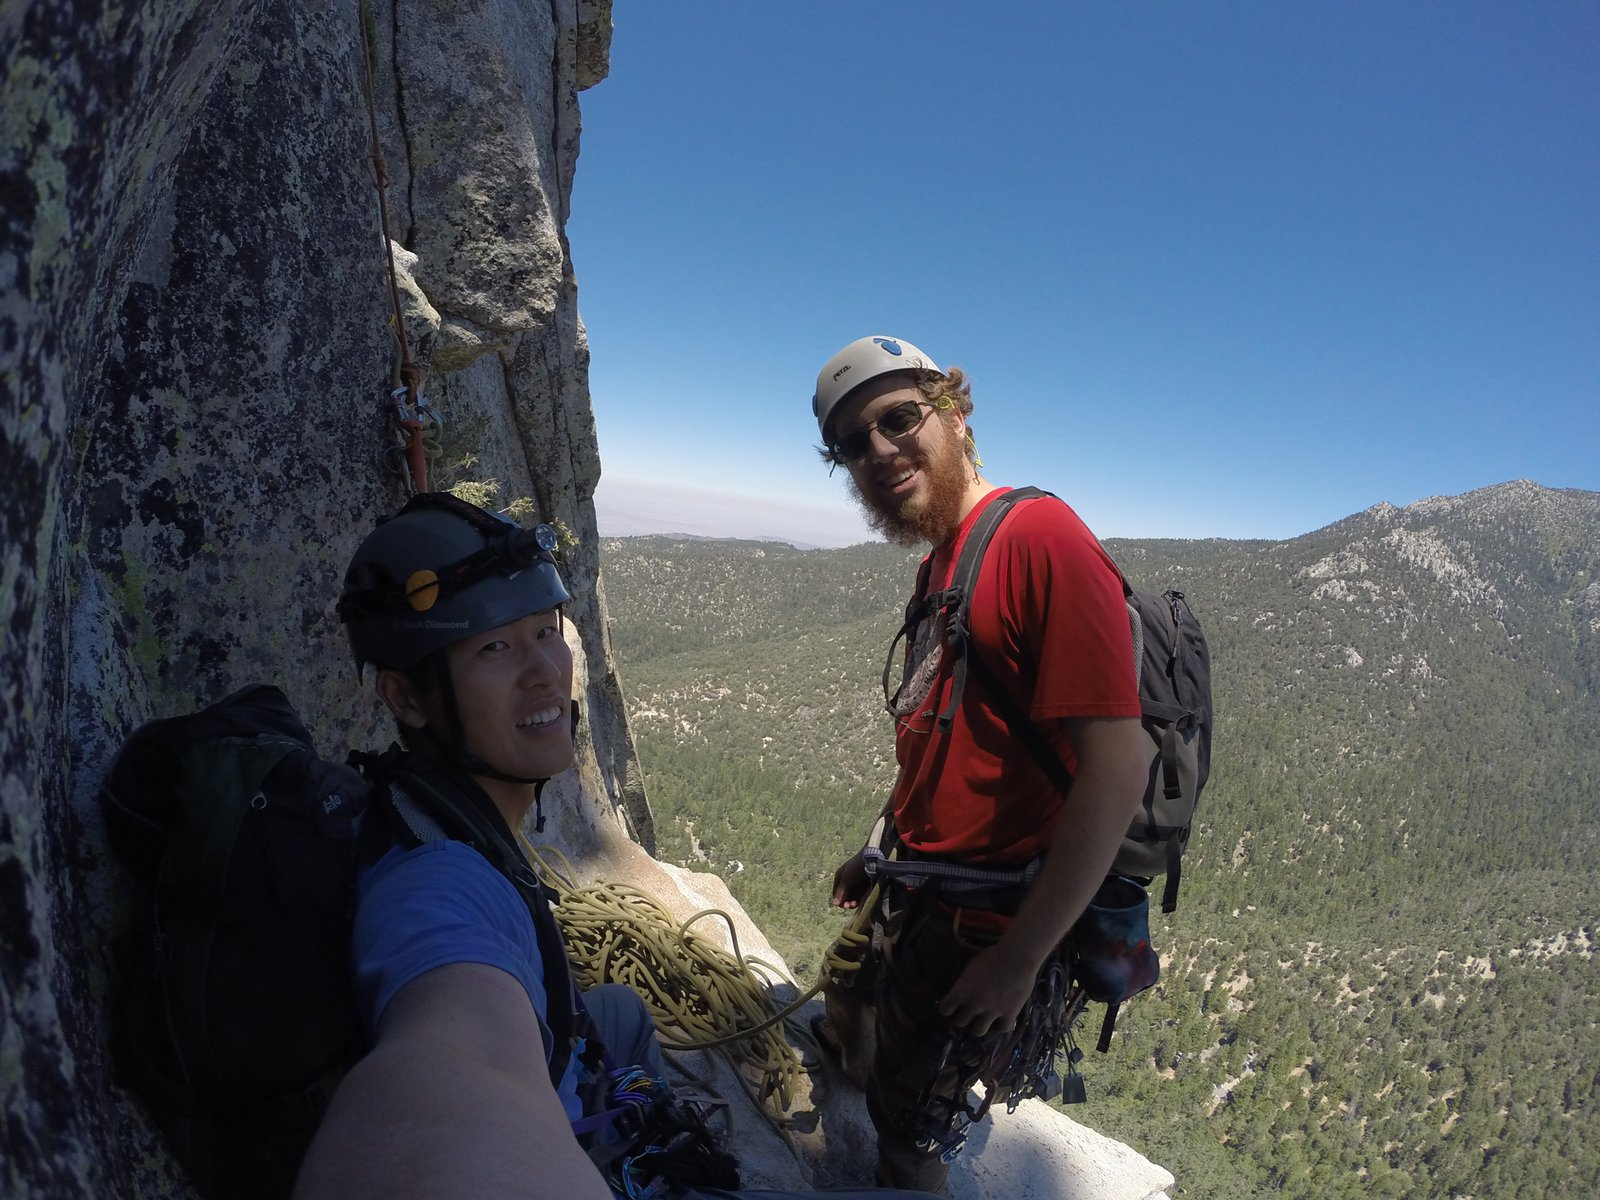 The_Wong_to_the_Long_Climb_at_Tahquitz_3